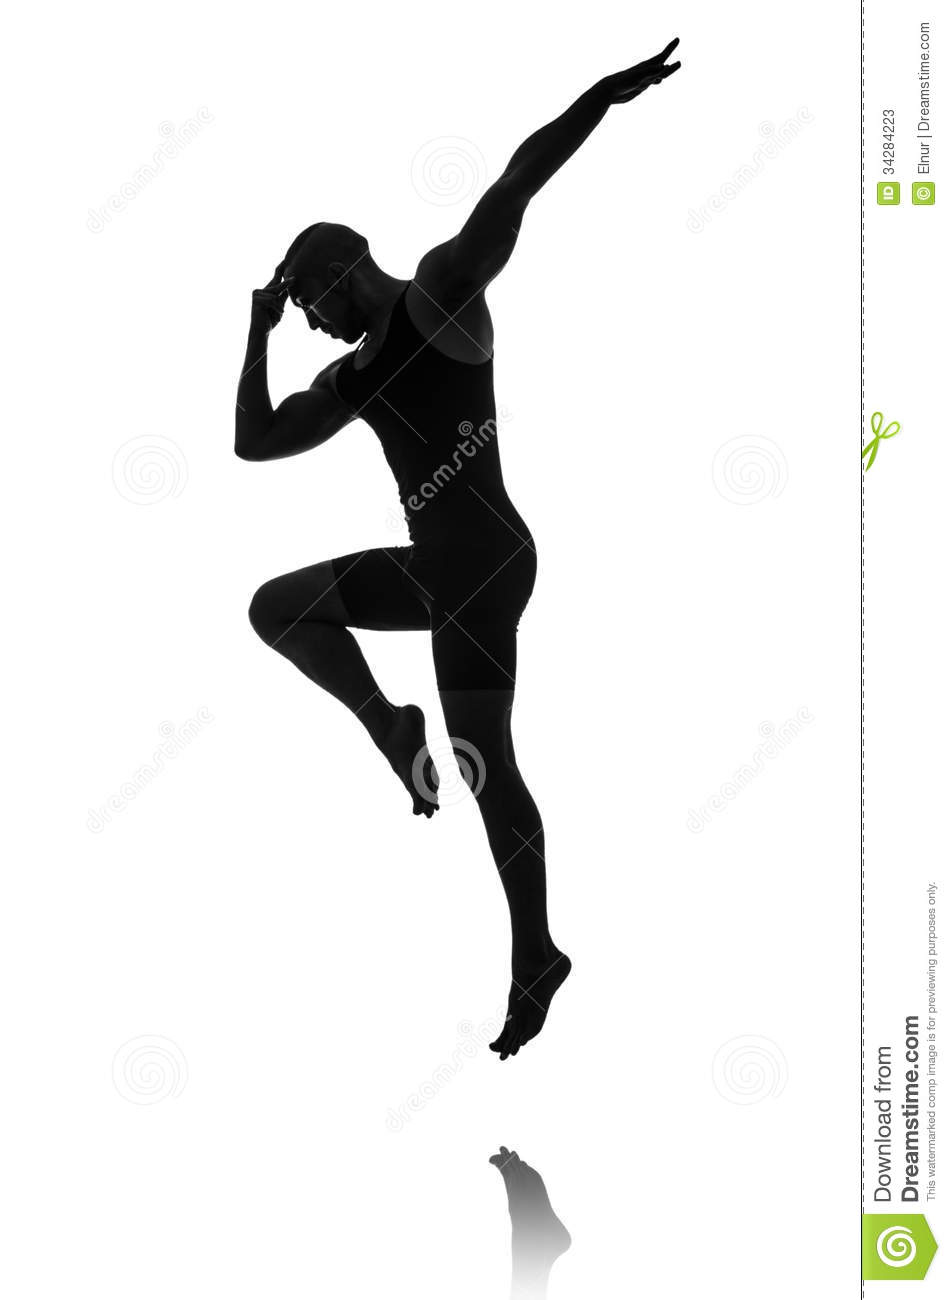 Silhouette Of Male Dancer Stock Photos - Image: 34284223